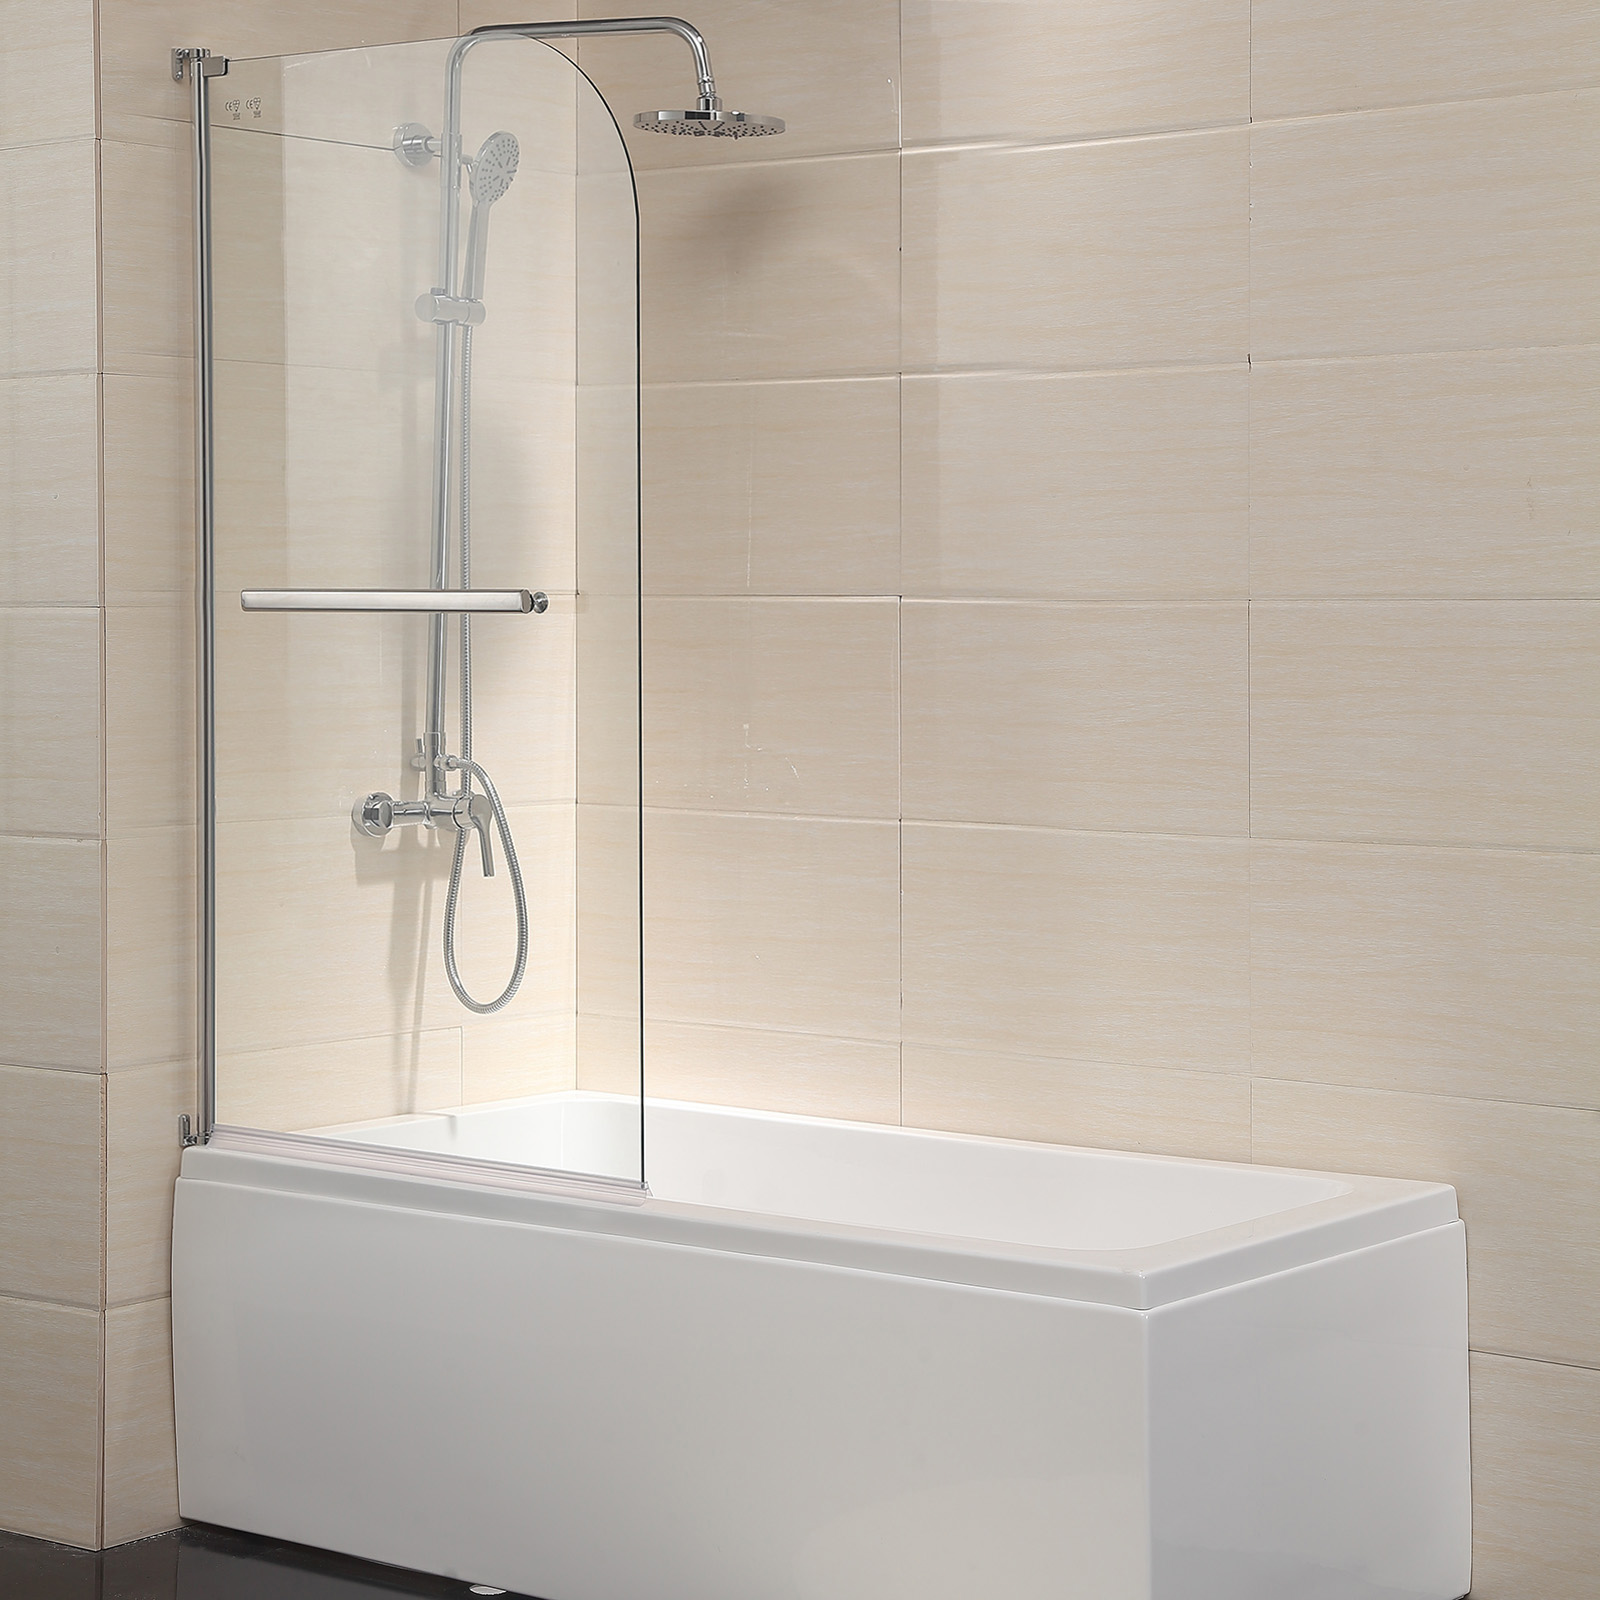 Details About Kenwell 55 X 31 Pivot Radius Frameless Bath Shower Door 1 4 Clear Glass Chrome